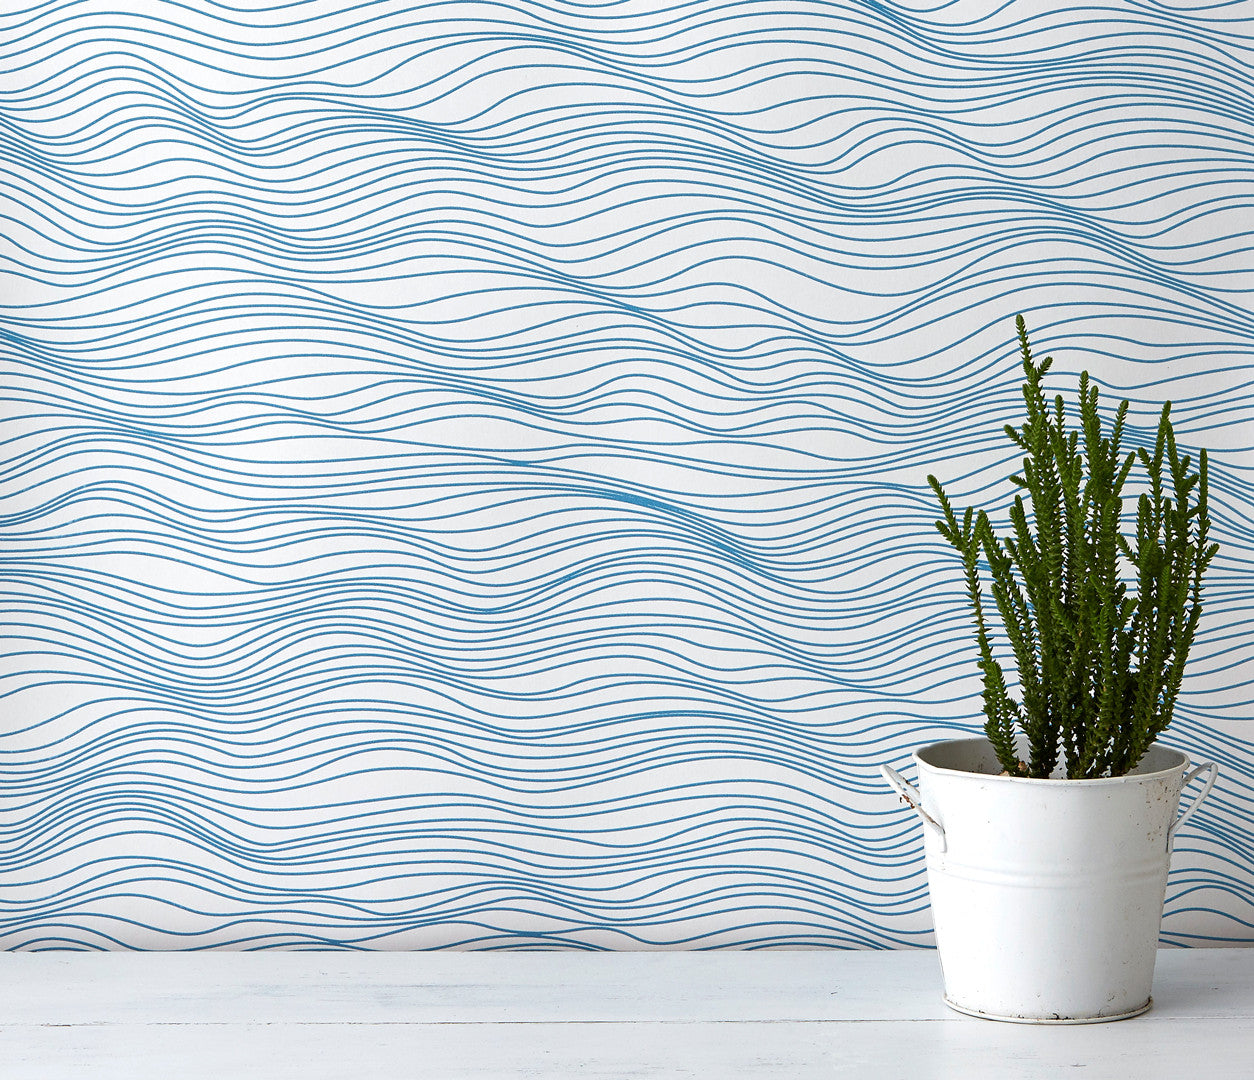 Linear Waves Wallpaper in Blue, Modern Wallpaper Designs for the Home